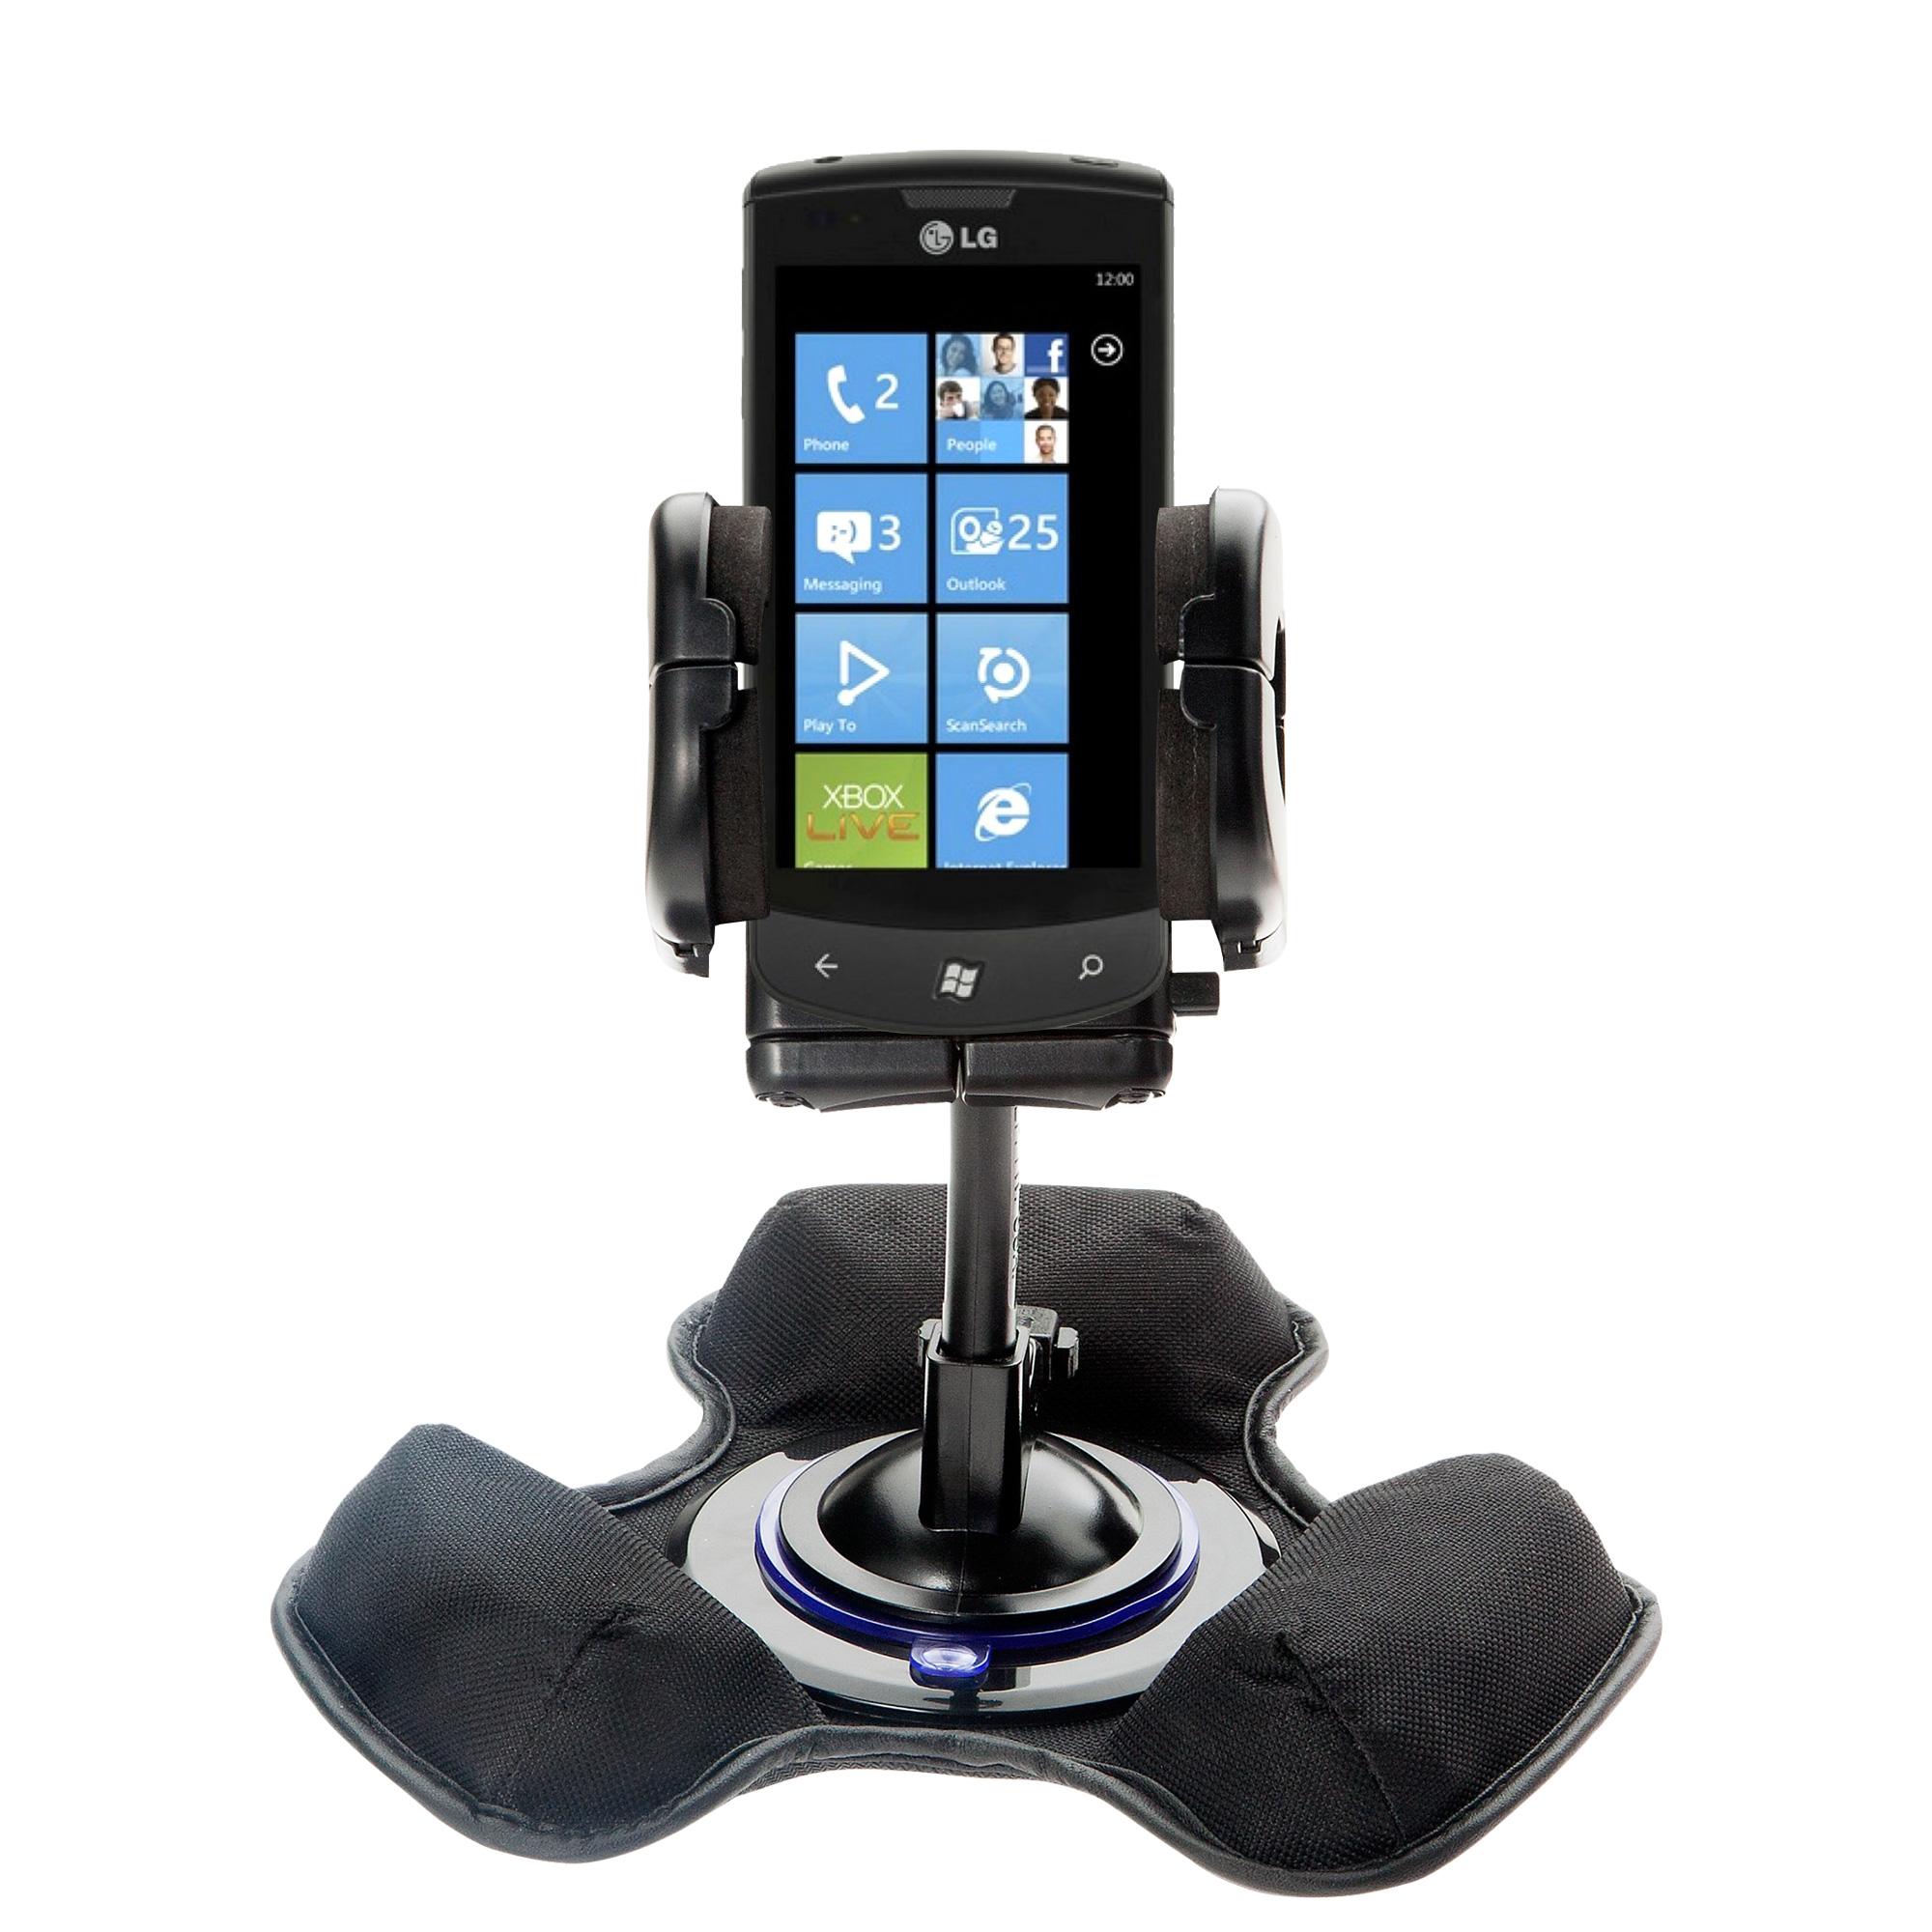 Dash and Windshield Holder compatible with the LG E900h